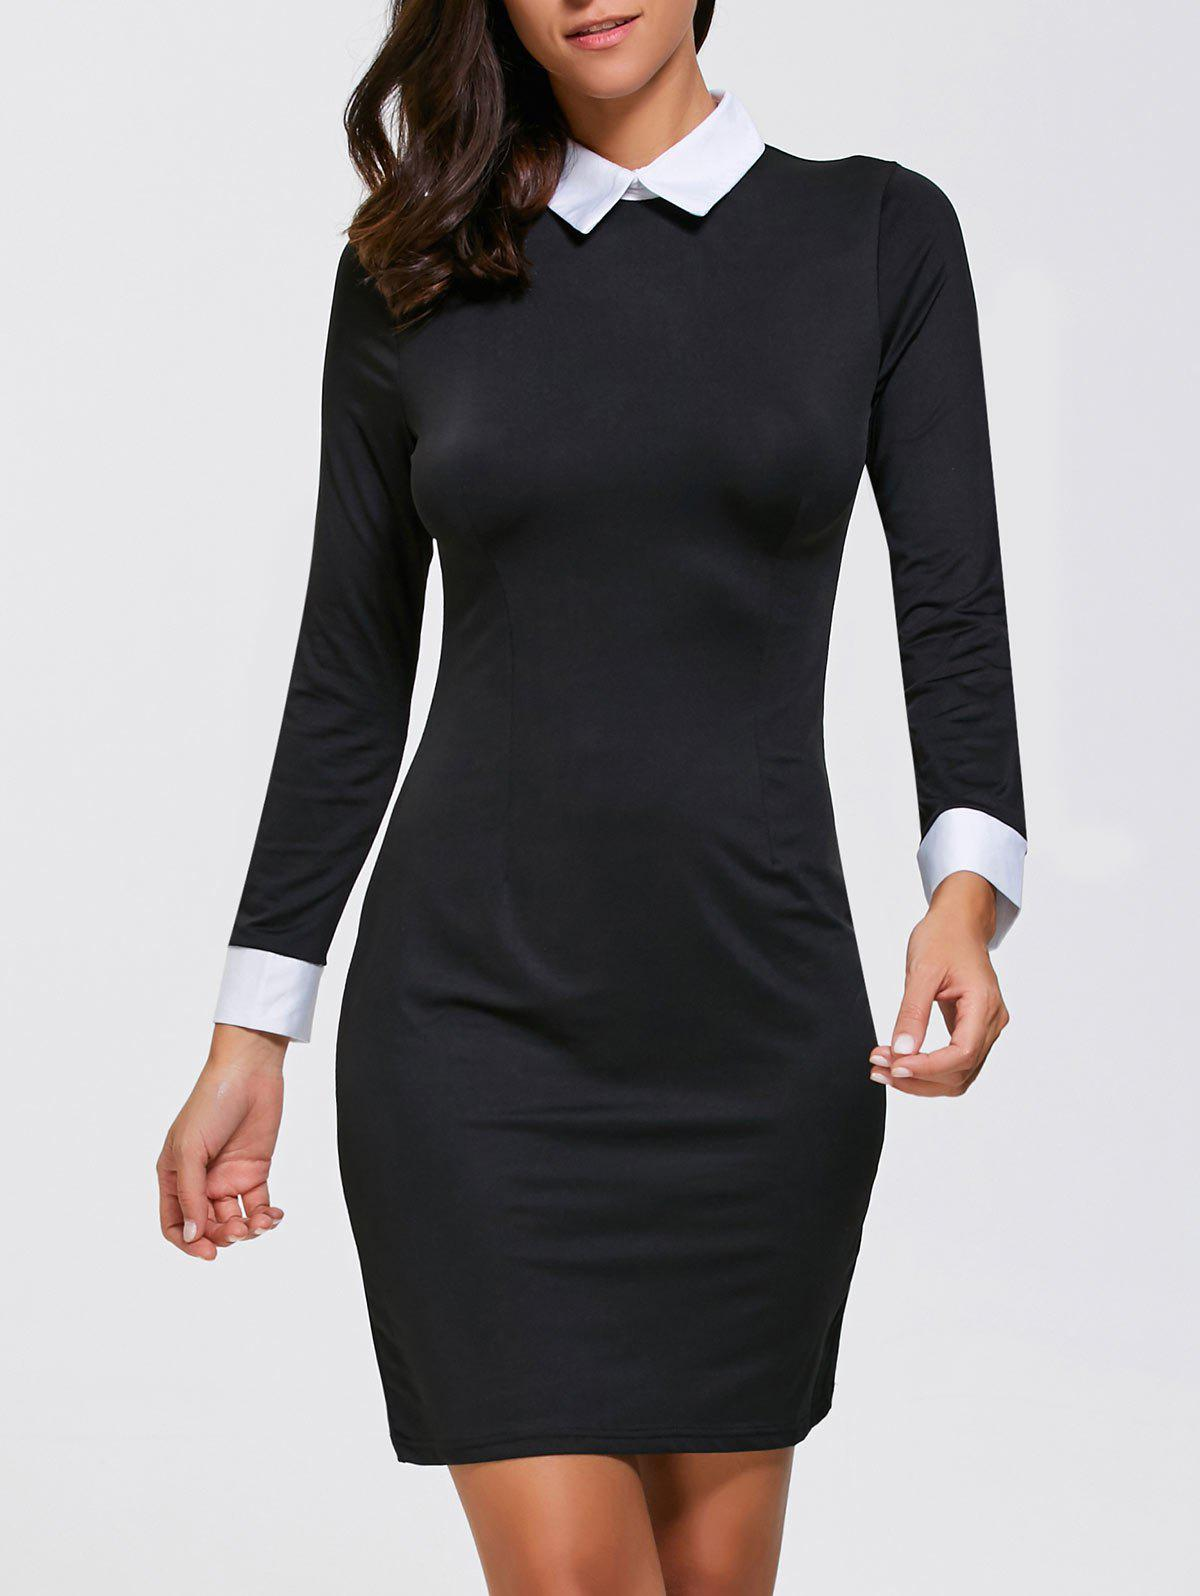 Best Tight Formal Sheath Mini Long Sleeve Collared Dress